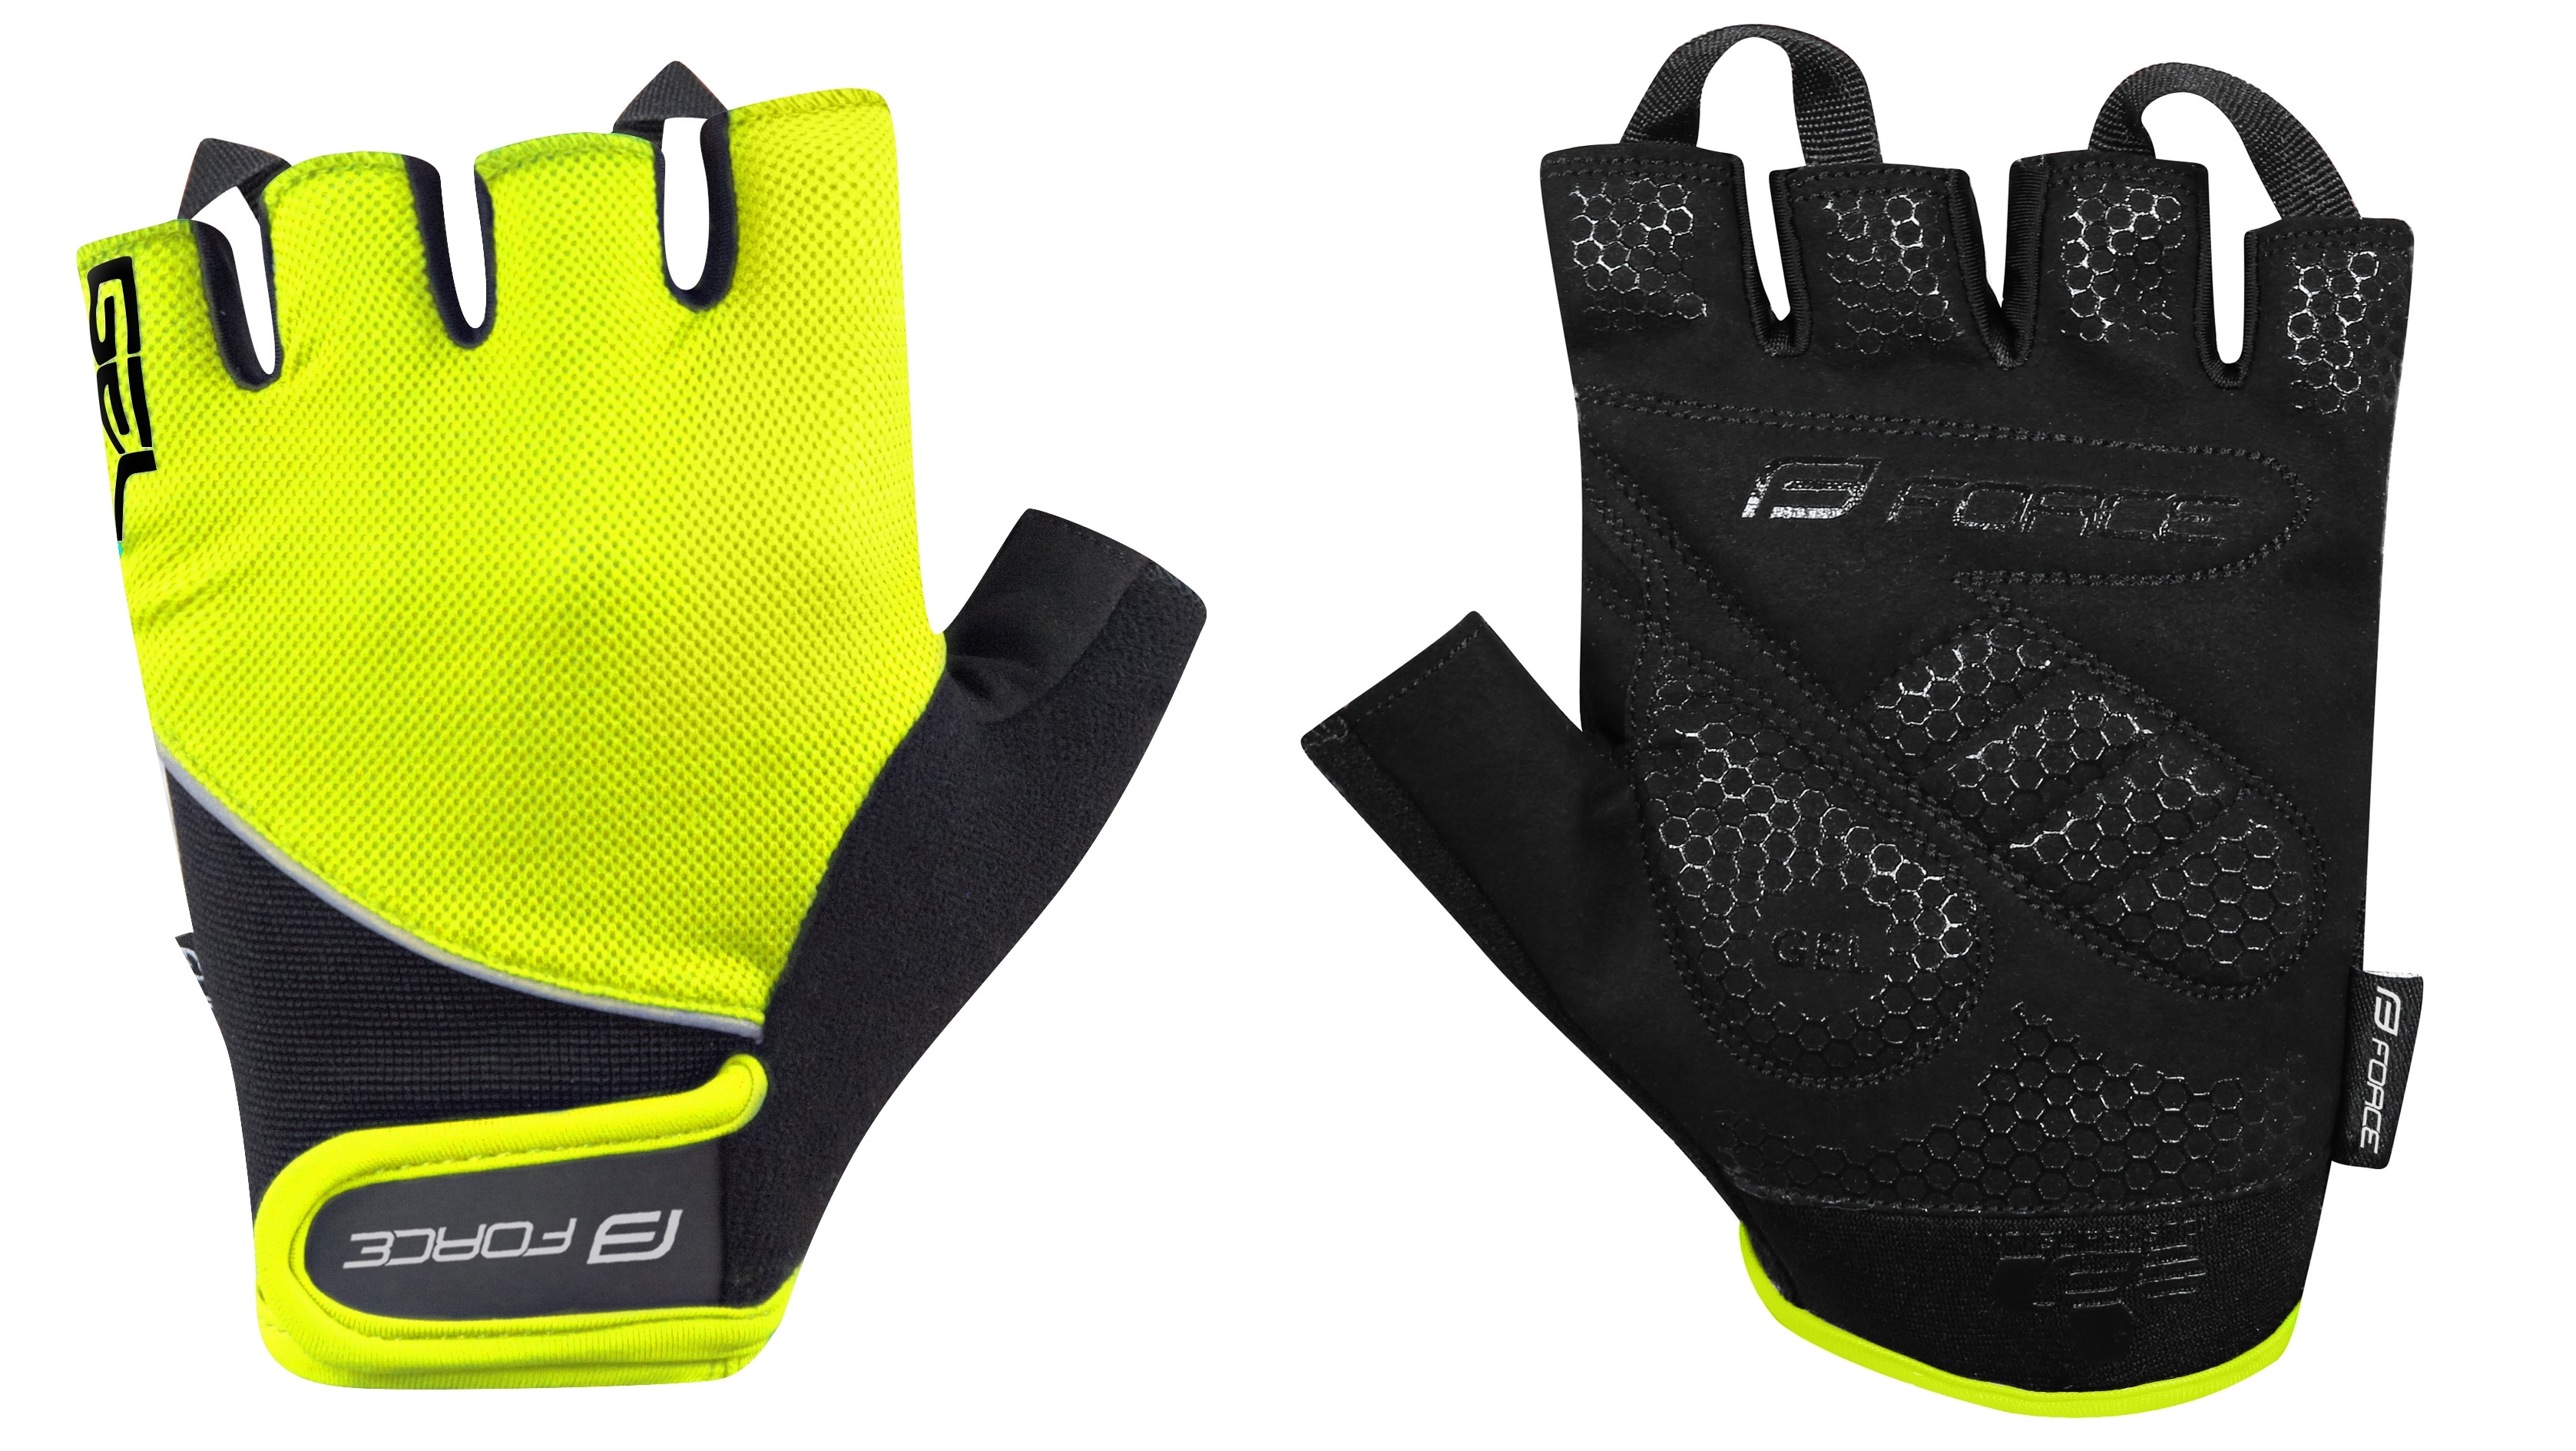 rukavice FORCE GEL 17, fluo S